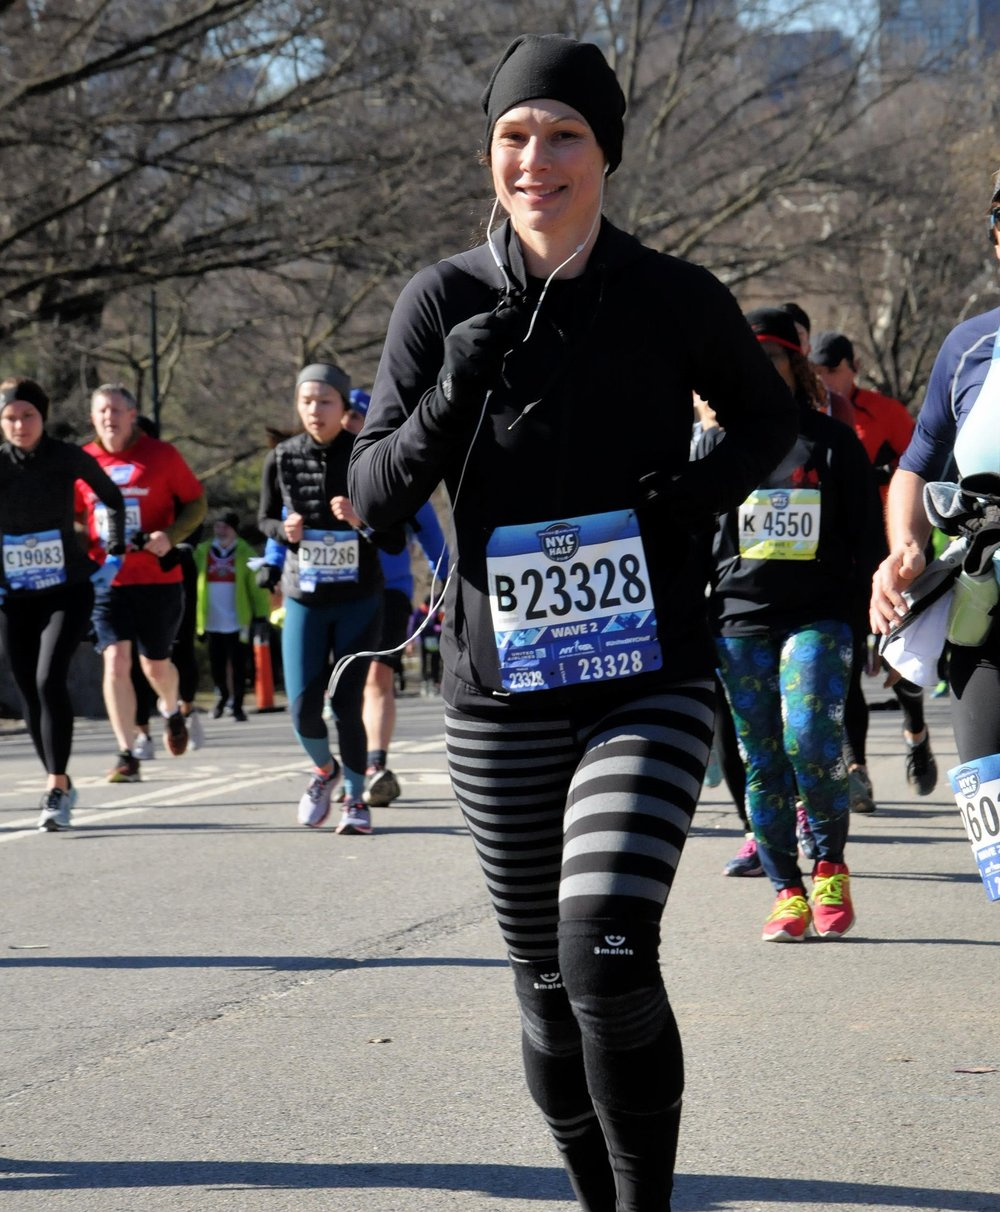 Kimberly Delaney hopes that her running will inspire students—and their families.